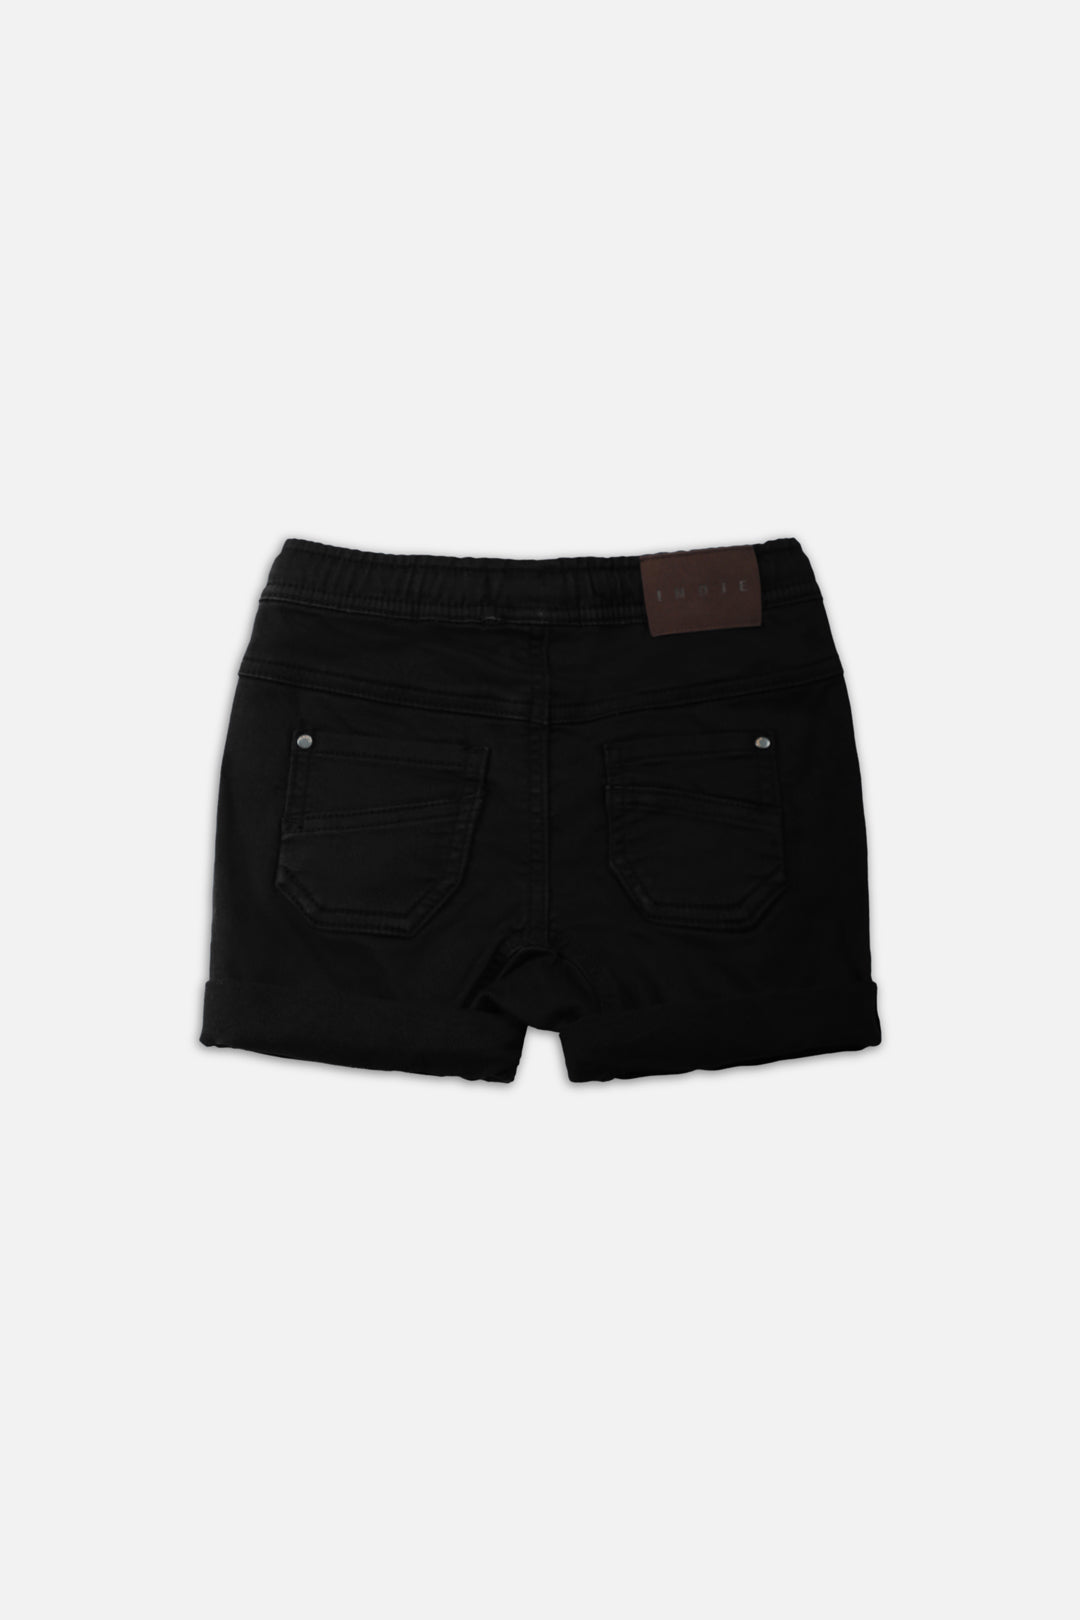 S20 Arched Drifter Short - Black